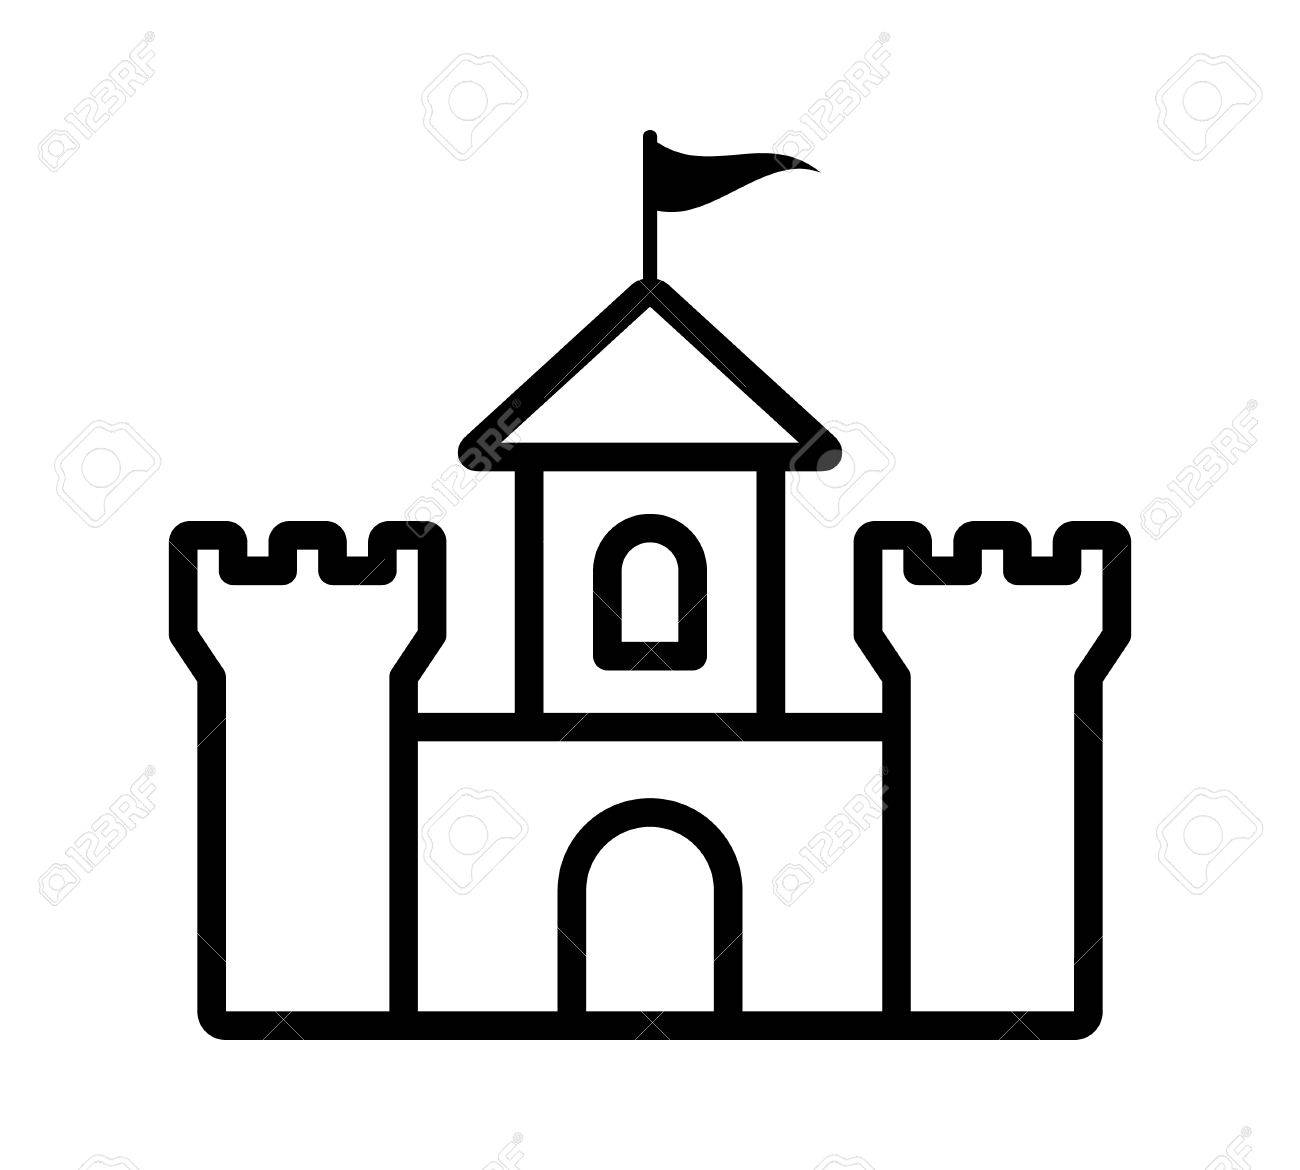 Castle fortress or citadel base line art icon for games and websites.